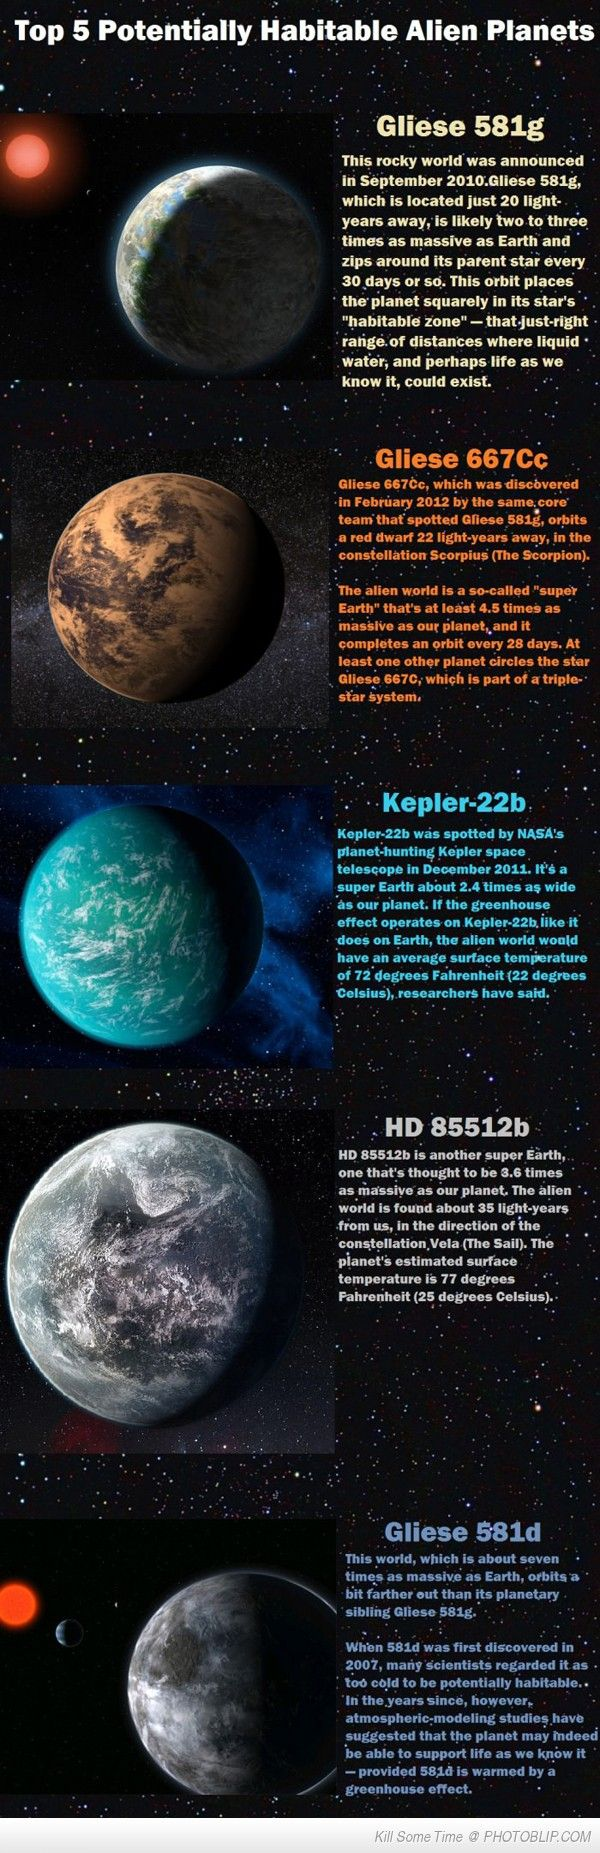 Top 5 Habitable Alien Planets. Liquid water, surface temperature (responsible for water in the liquid form), and presence of chlorophyll are essential for life as we know it.  Perhaps the chlorophyll could be introduced (?)